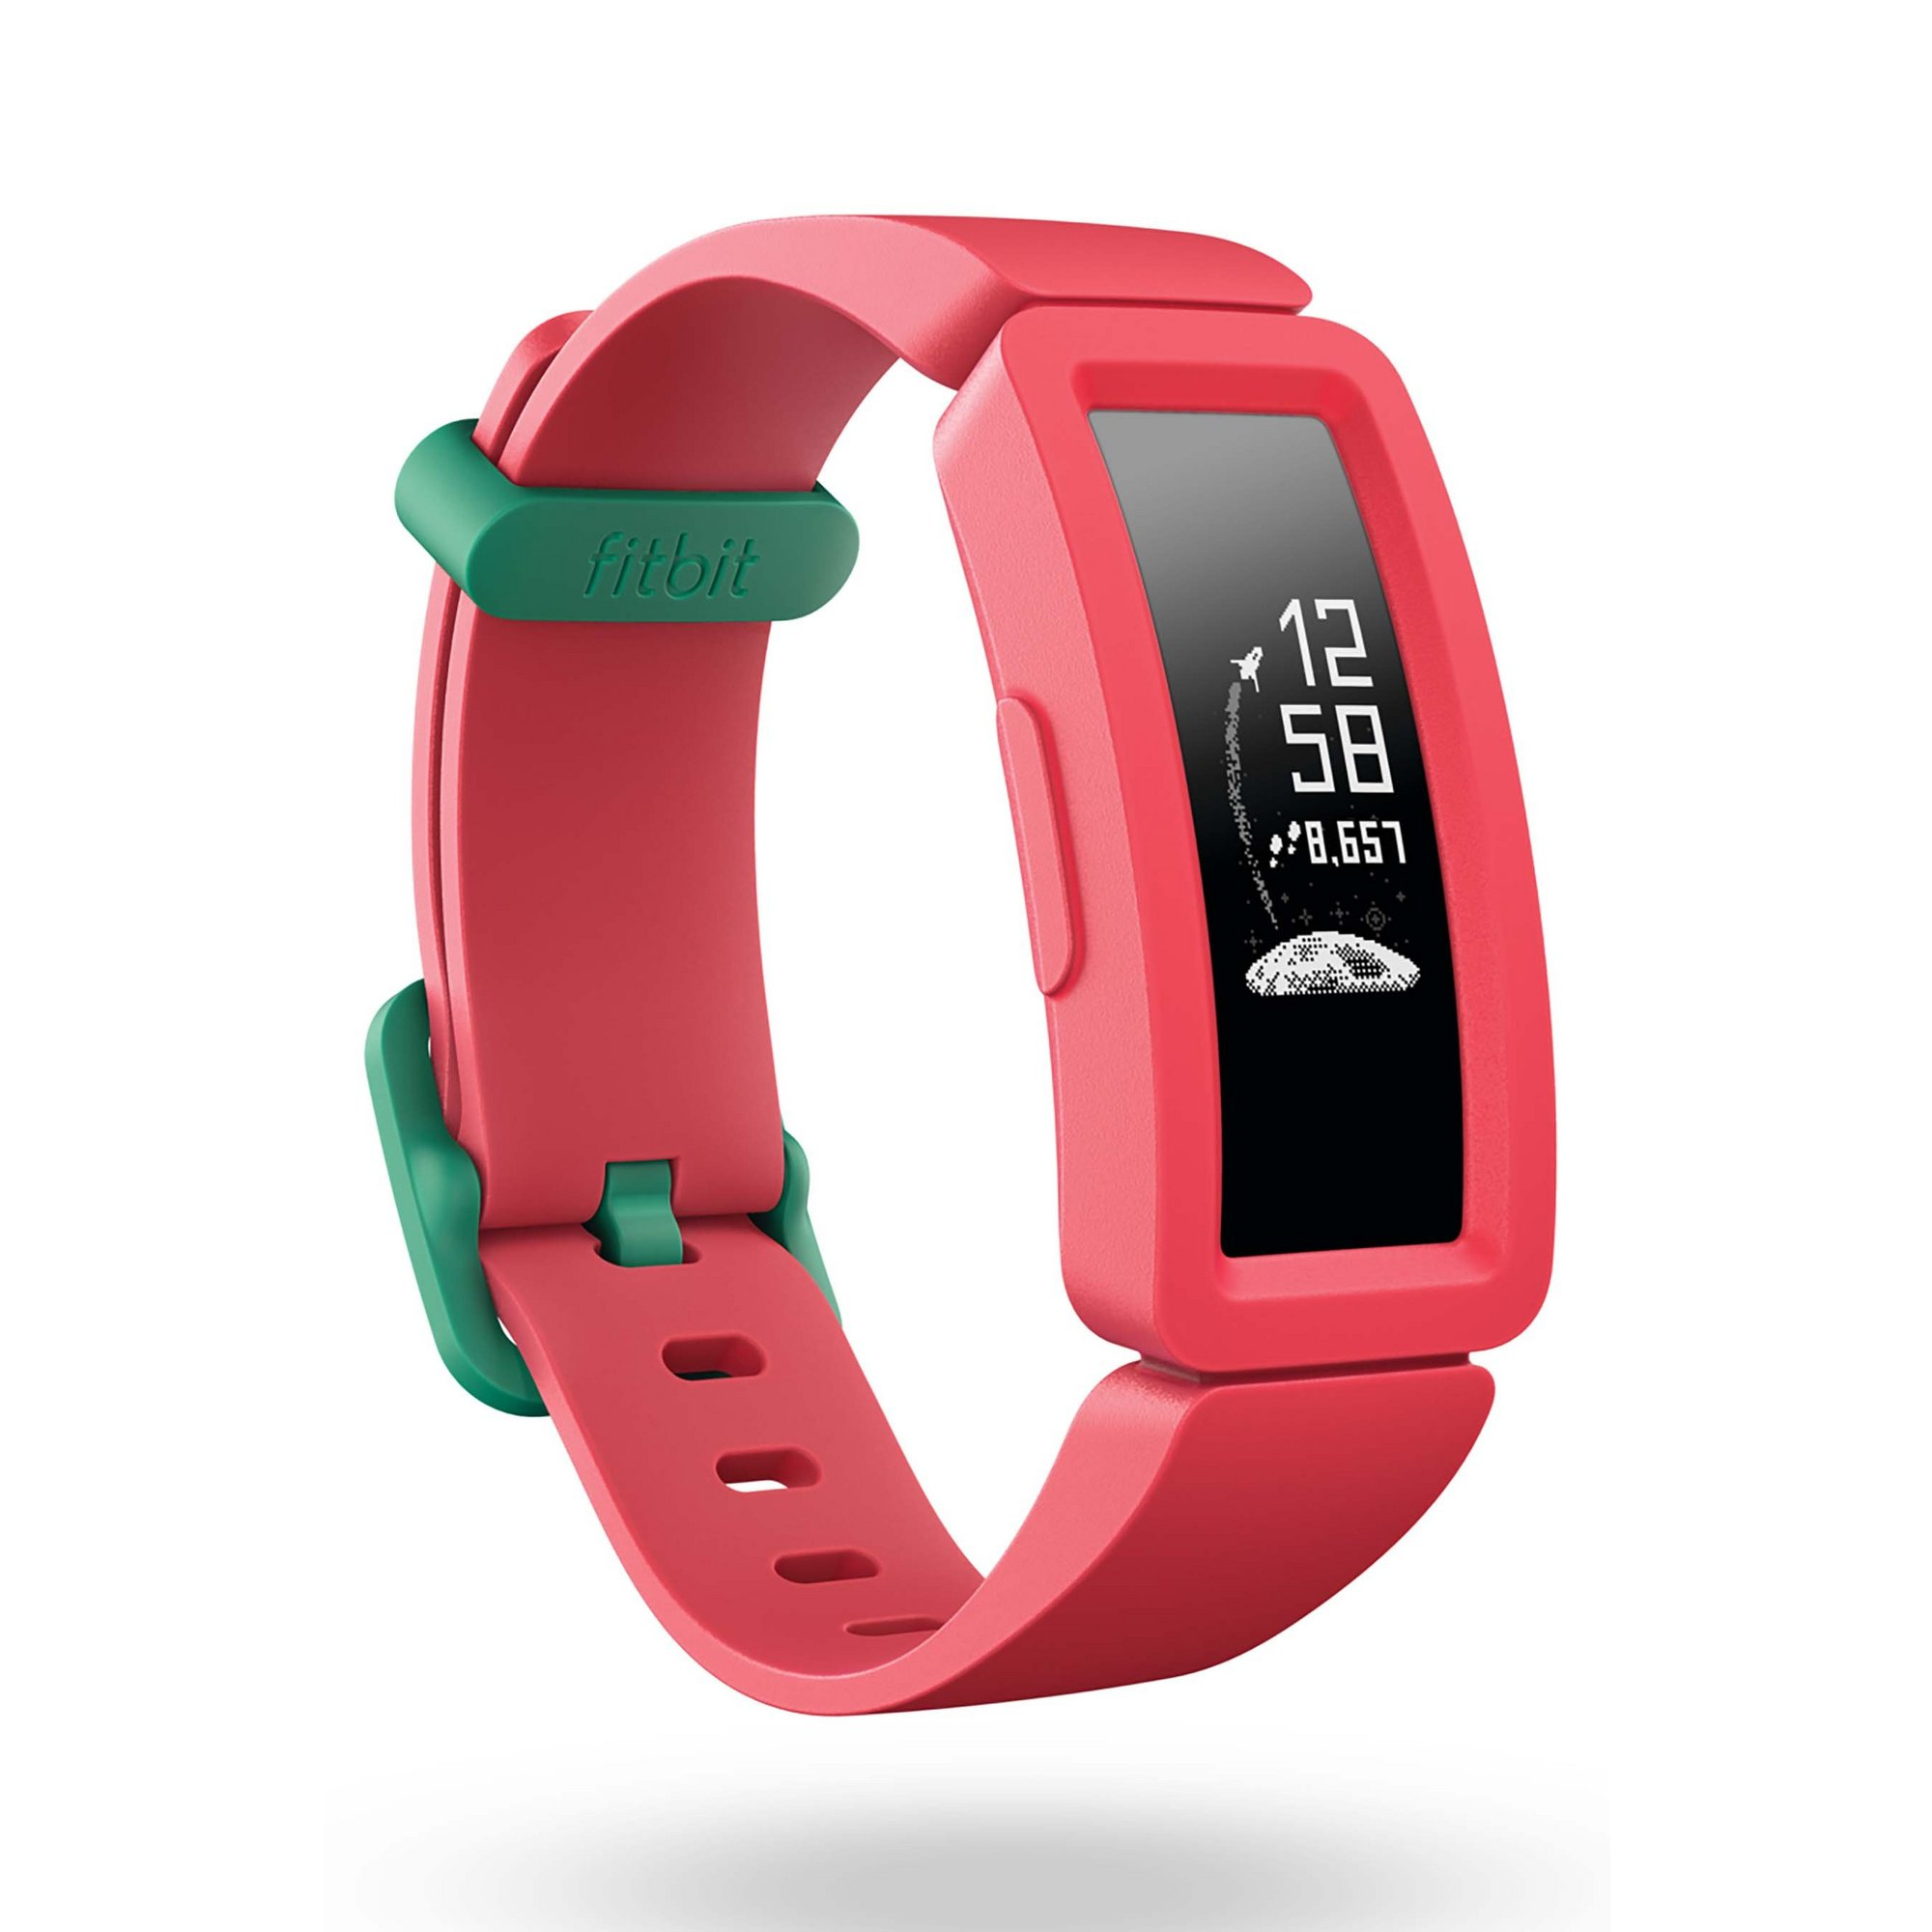 Image of Fitbit Ace 2 Activity Tracker